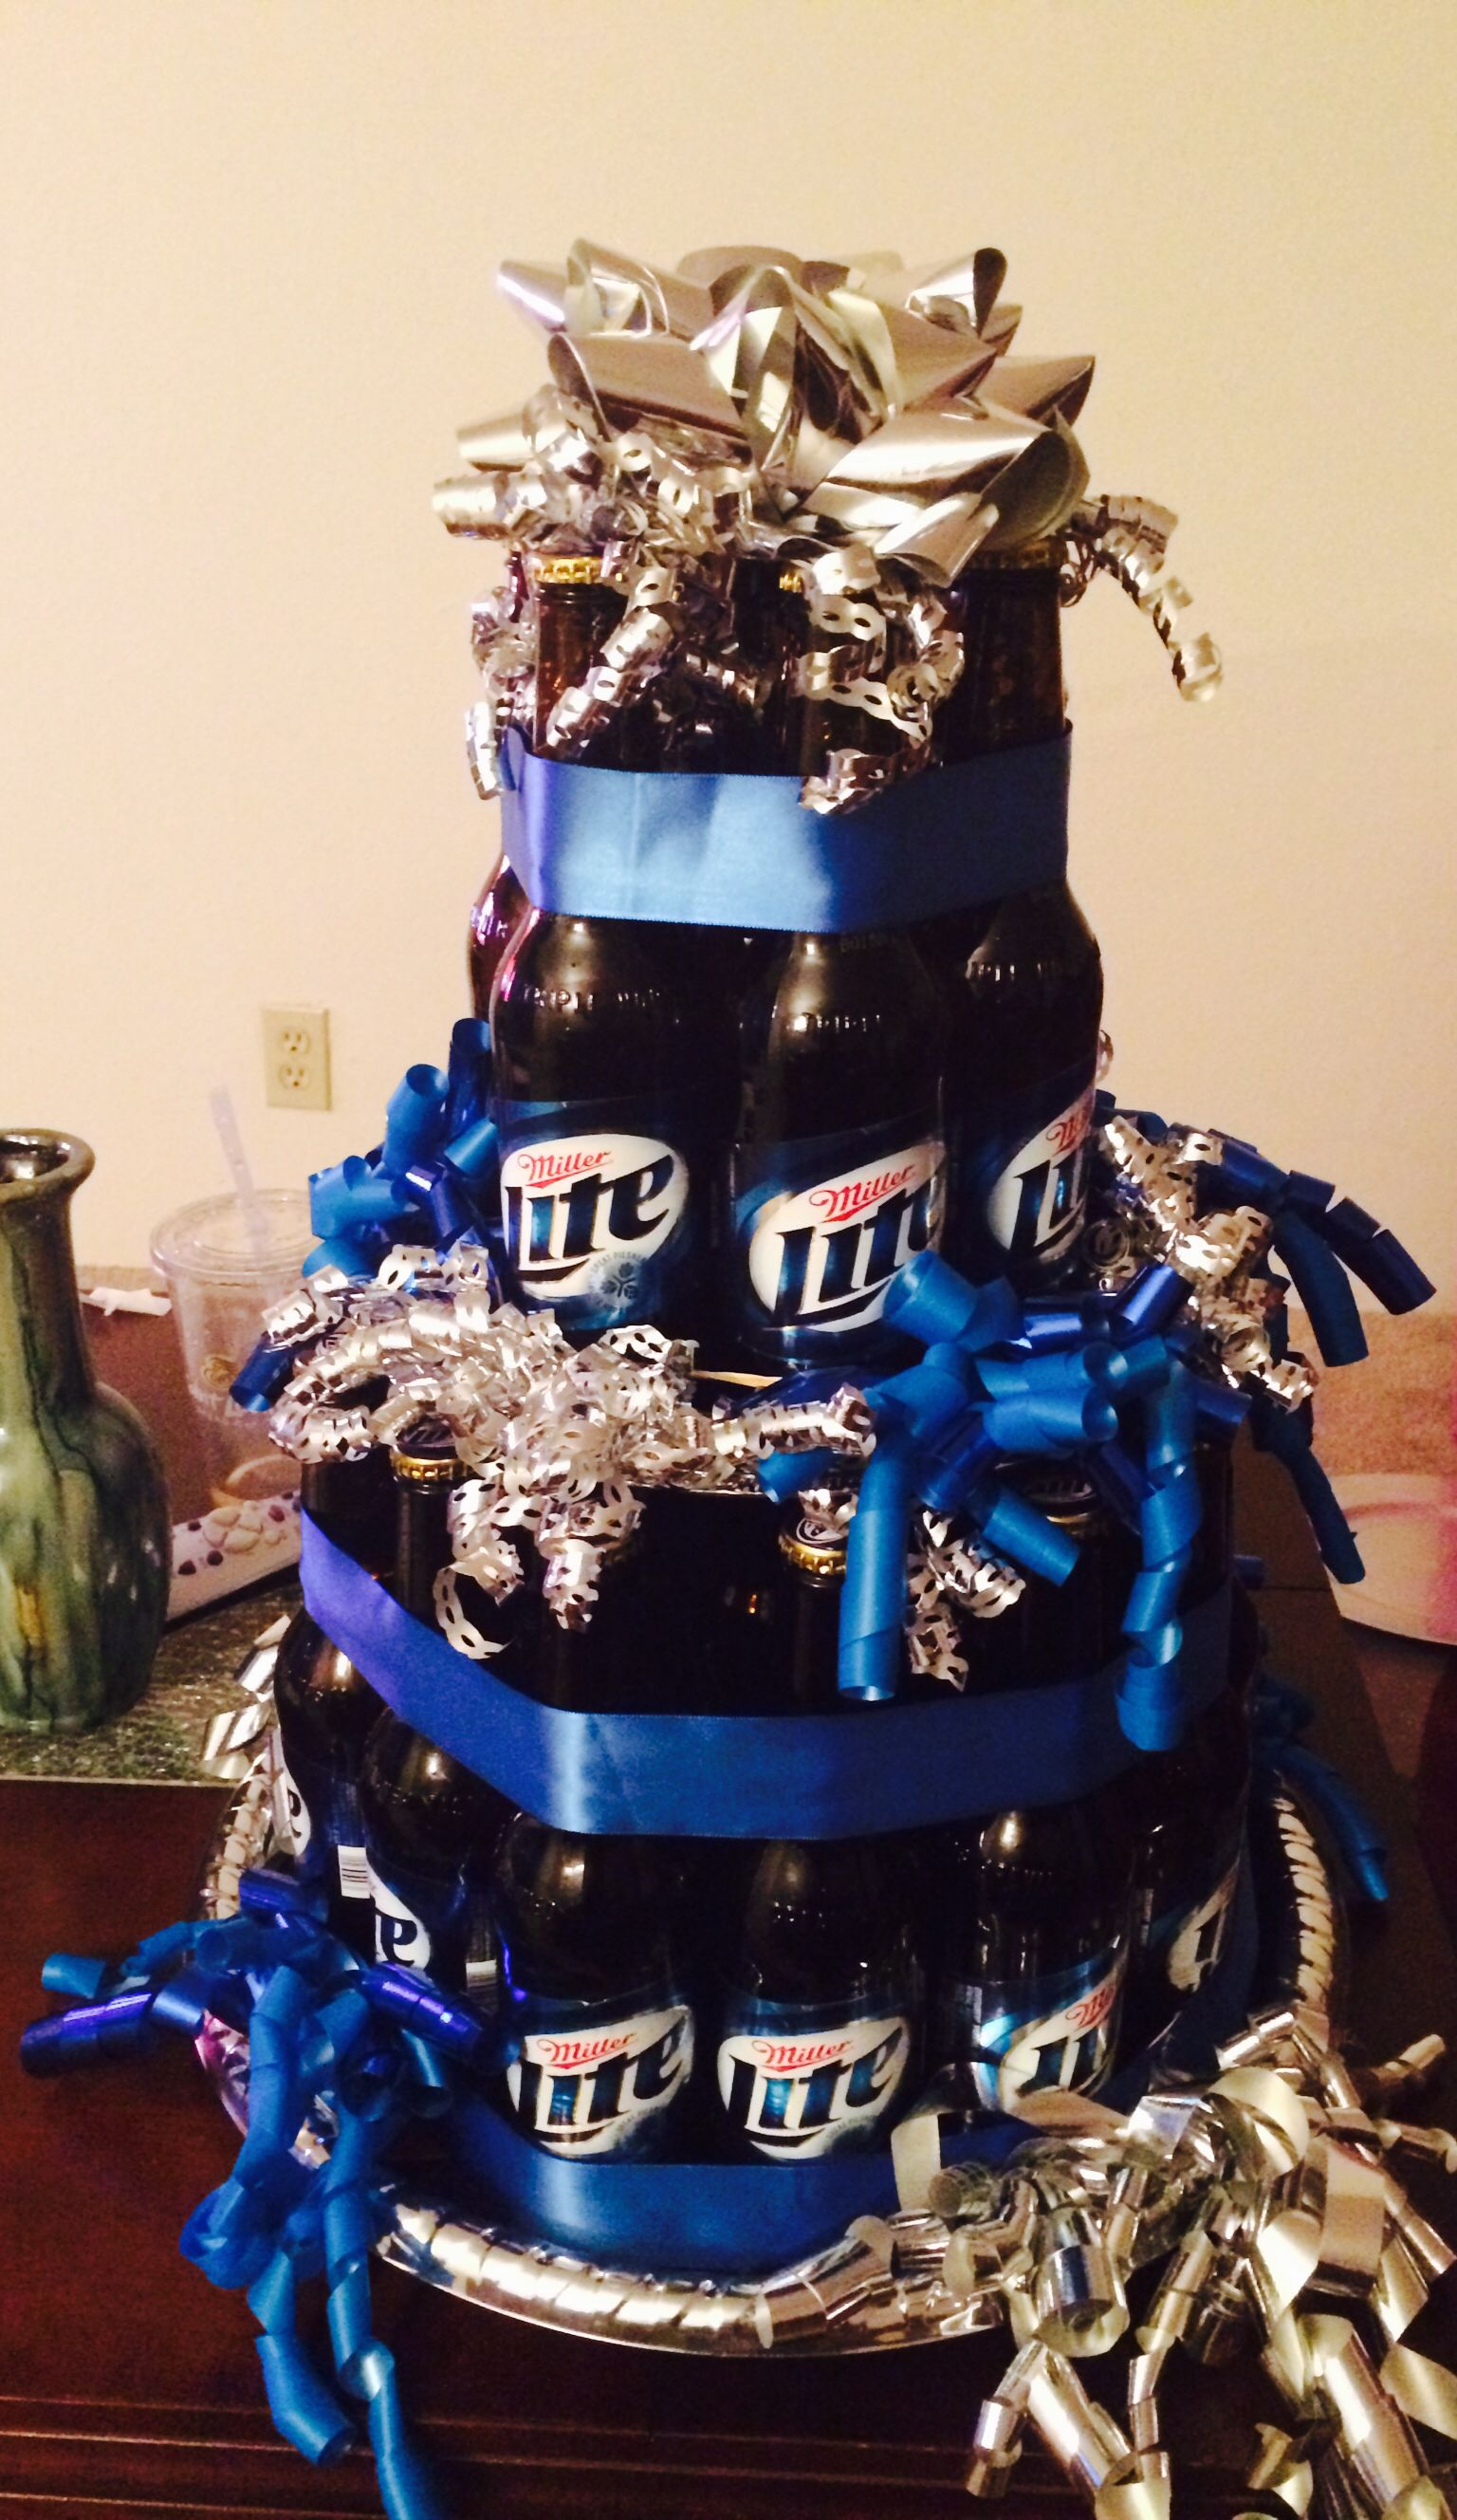 Beer Bottle Cake Decorations Beer Bottle Cake I Made For My Husband's 30Th Birthday  Pinned It